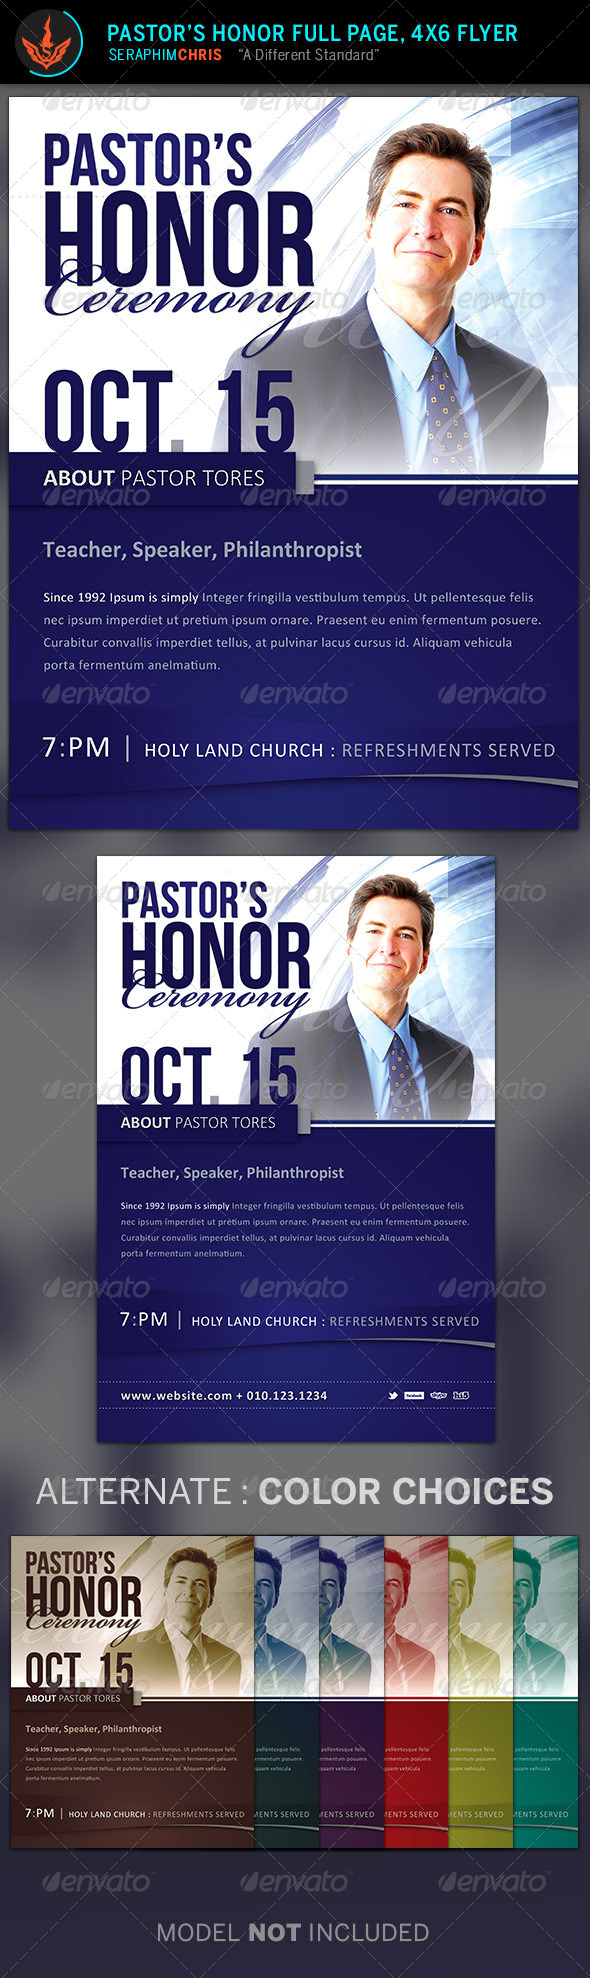 Pastor's Honor: Church Flyer Template - Church Flyers